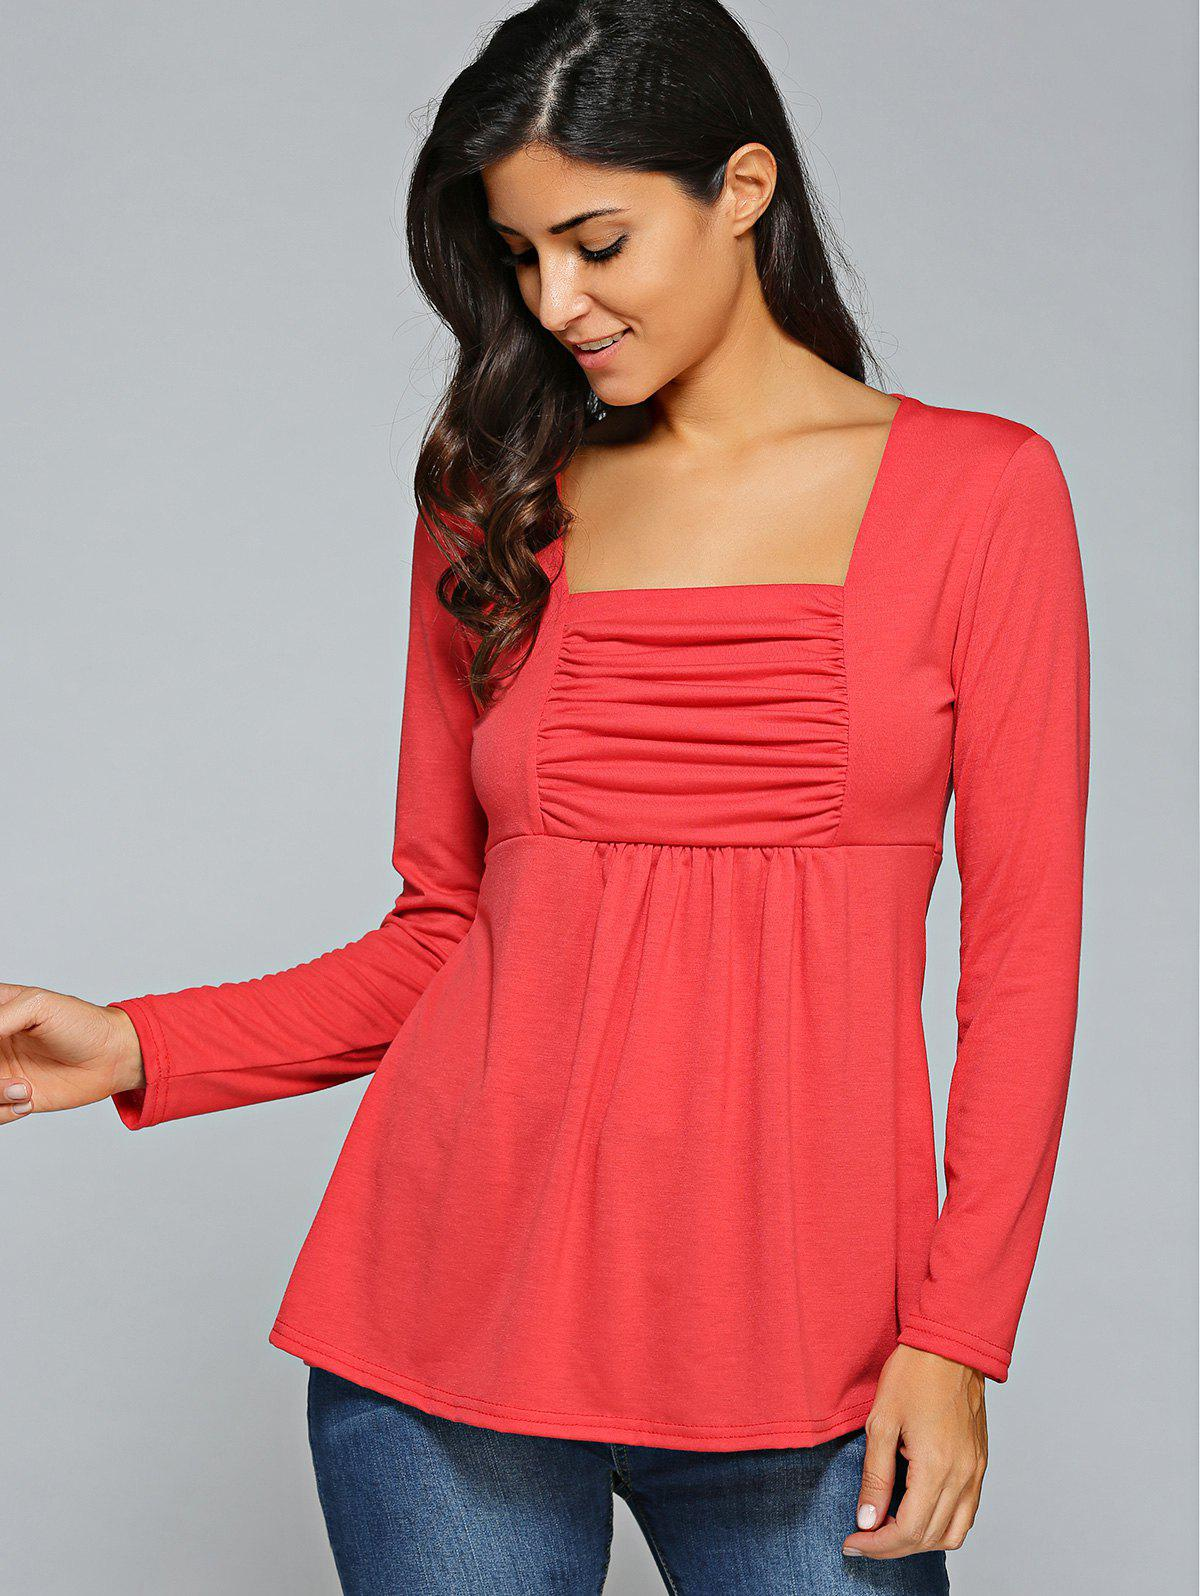 Square Neck Ruched Long Sleeve T-Shirt - RED L